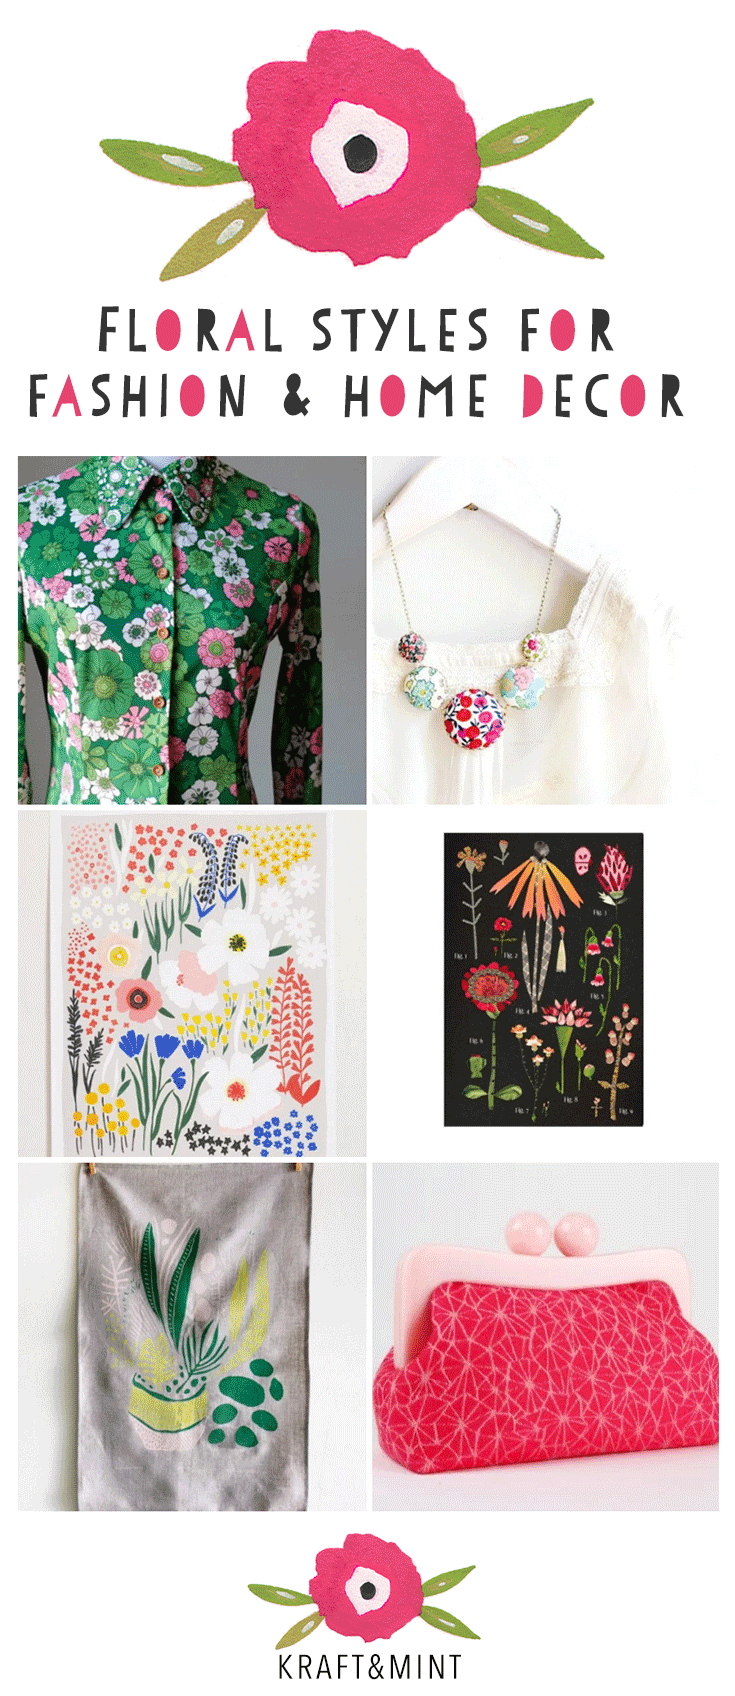 FLORAL STYLES from independent designers - Friday finds kraft&mint